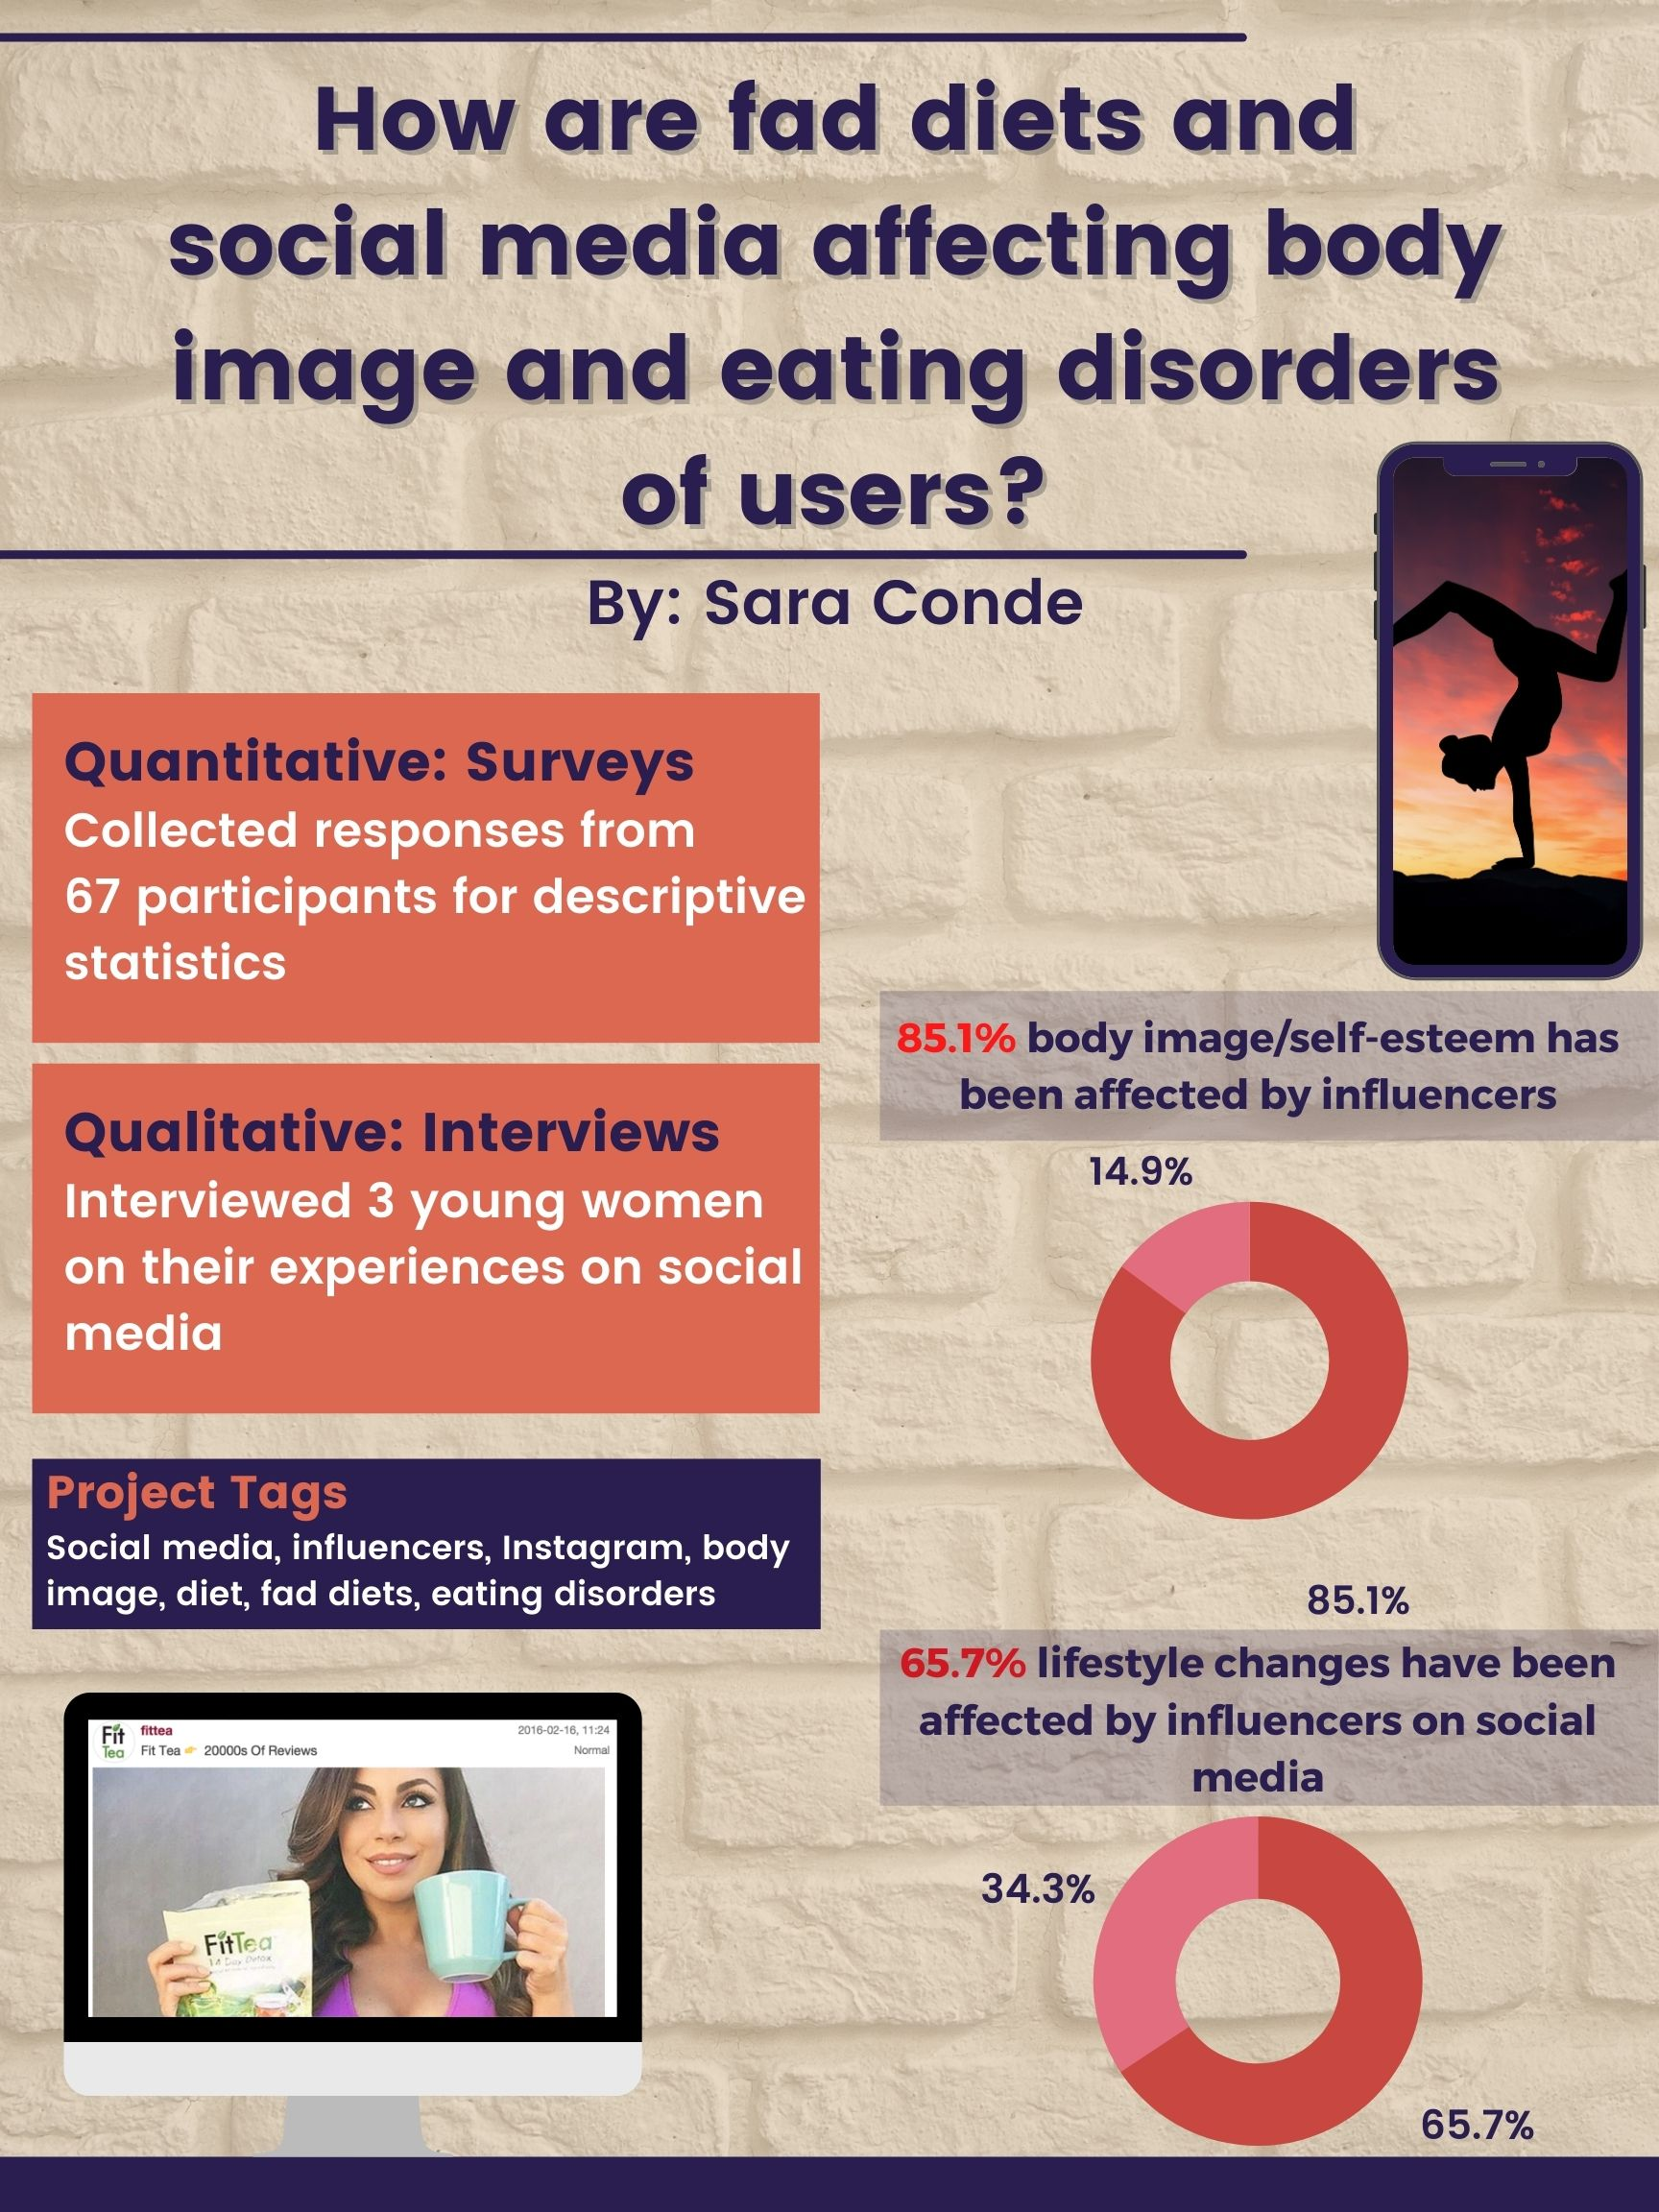 How are Fad Diets and Social Media Affecting Body Image and Eating Disorders of Users?